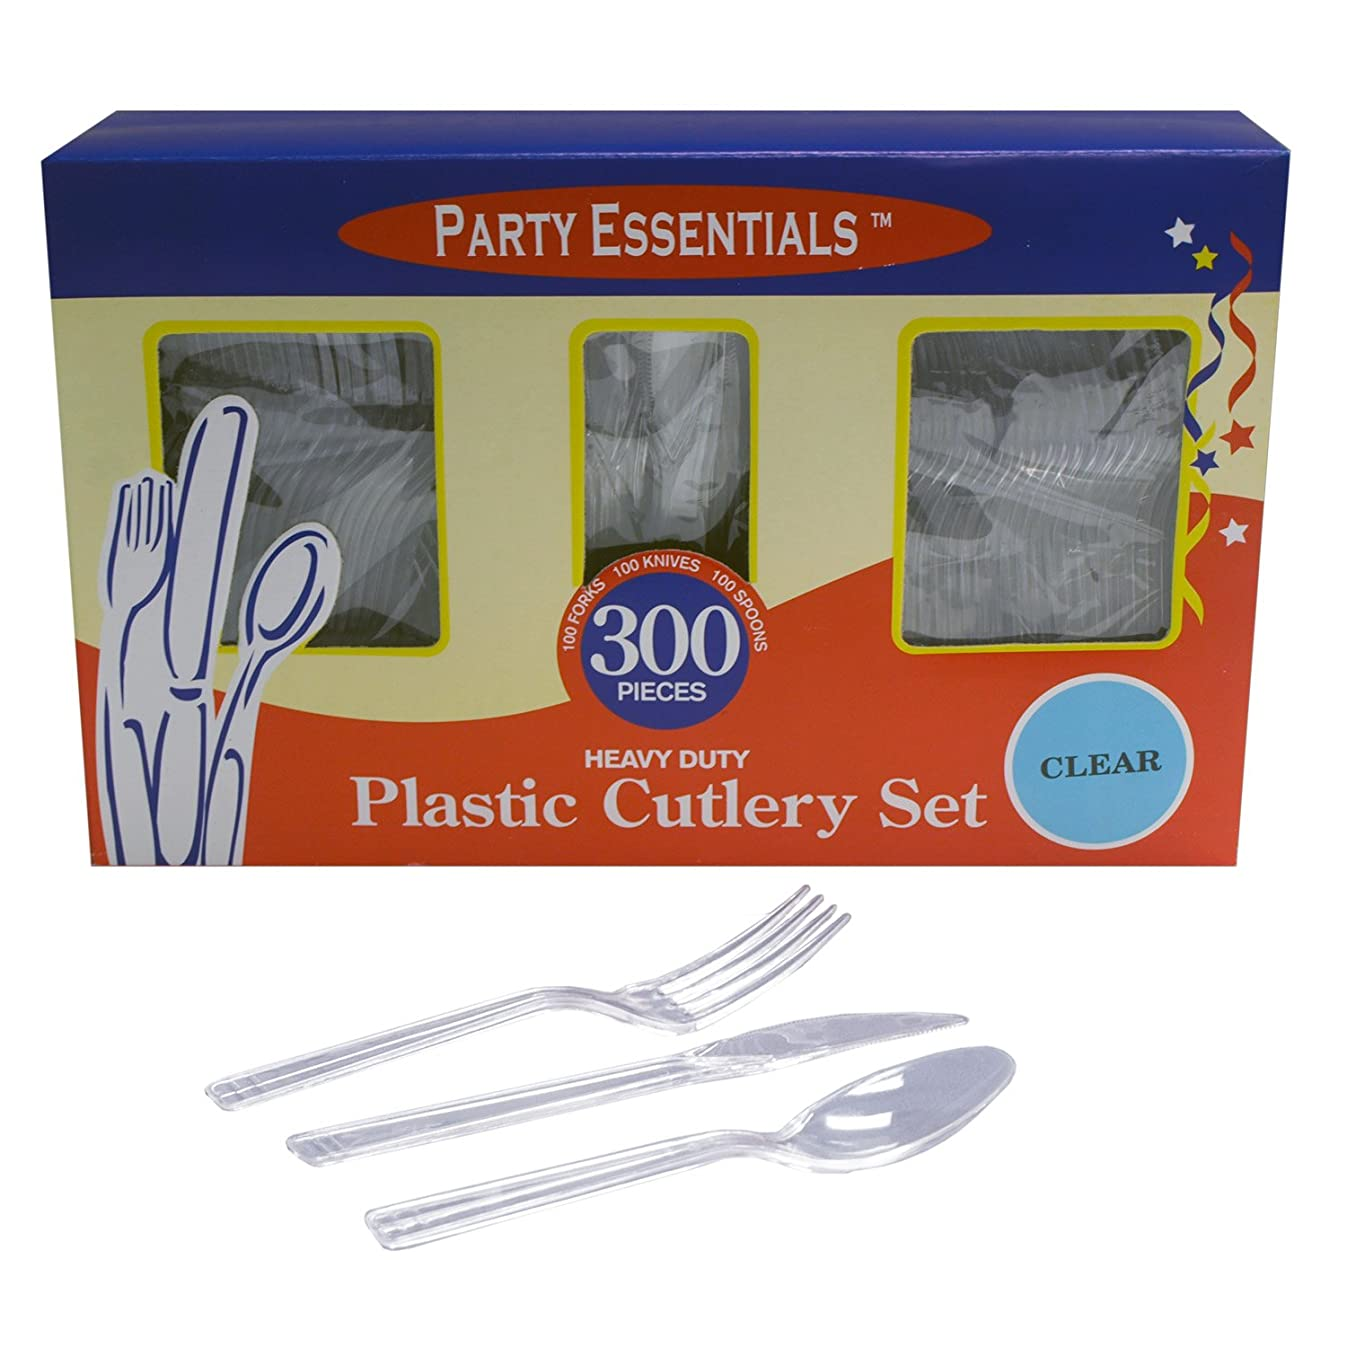 Party Essentials Heavy Duty Plastic Cutlery Box Set with Full Size Knives/Forks/Spoons, Clear, 100 Place Setting-Count